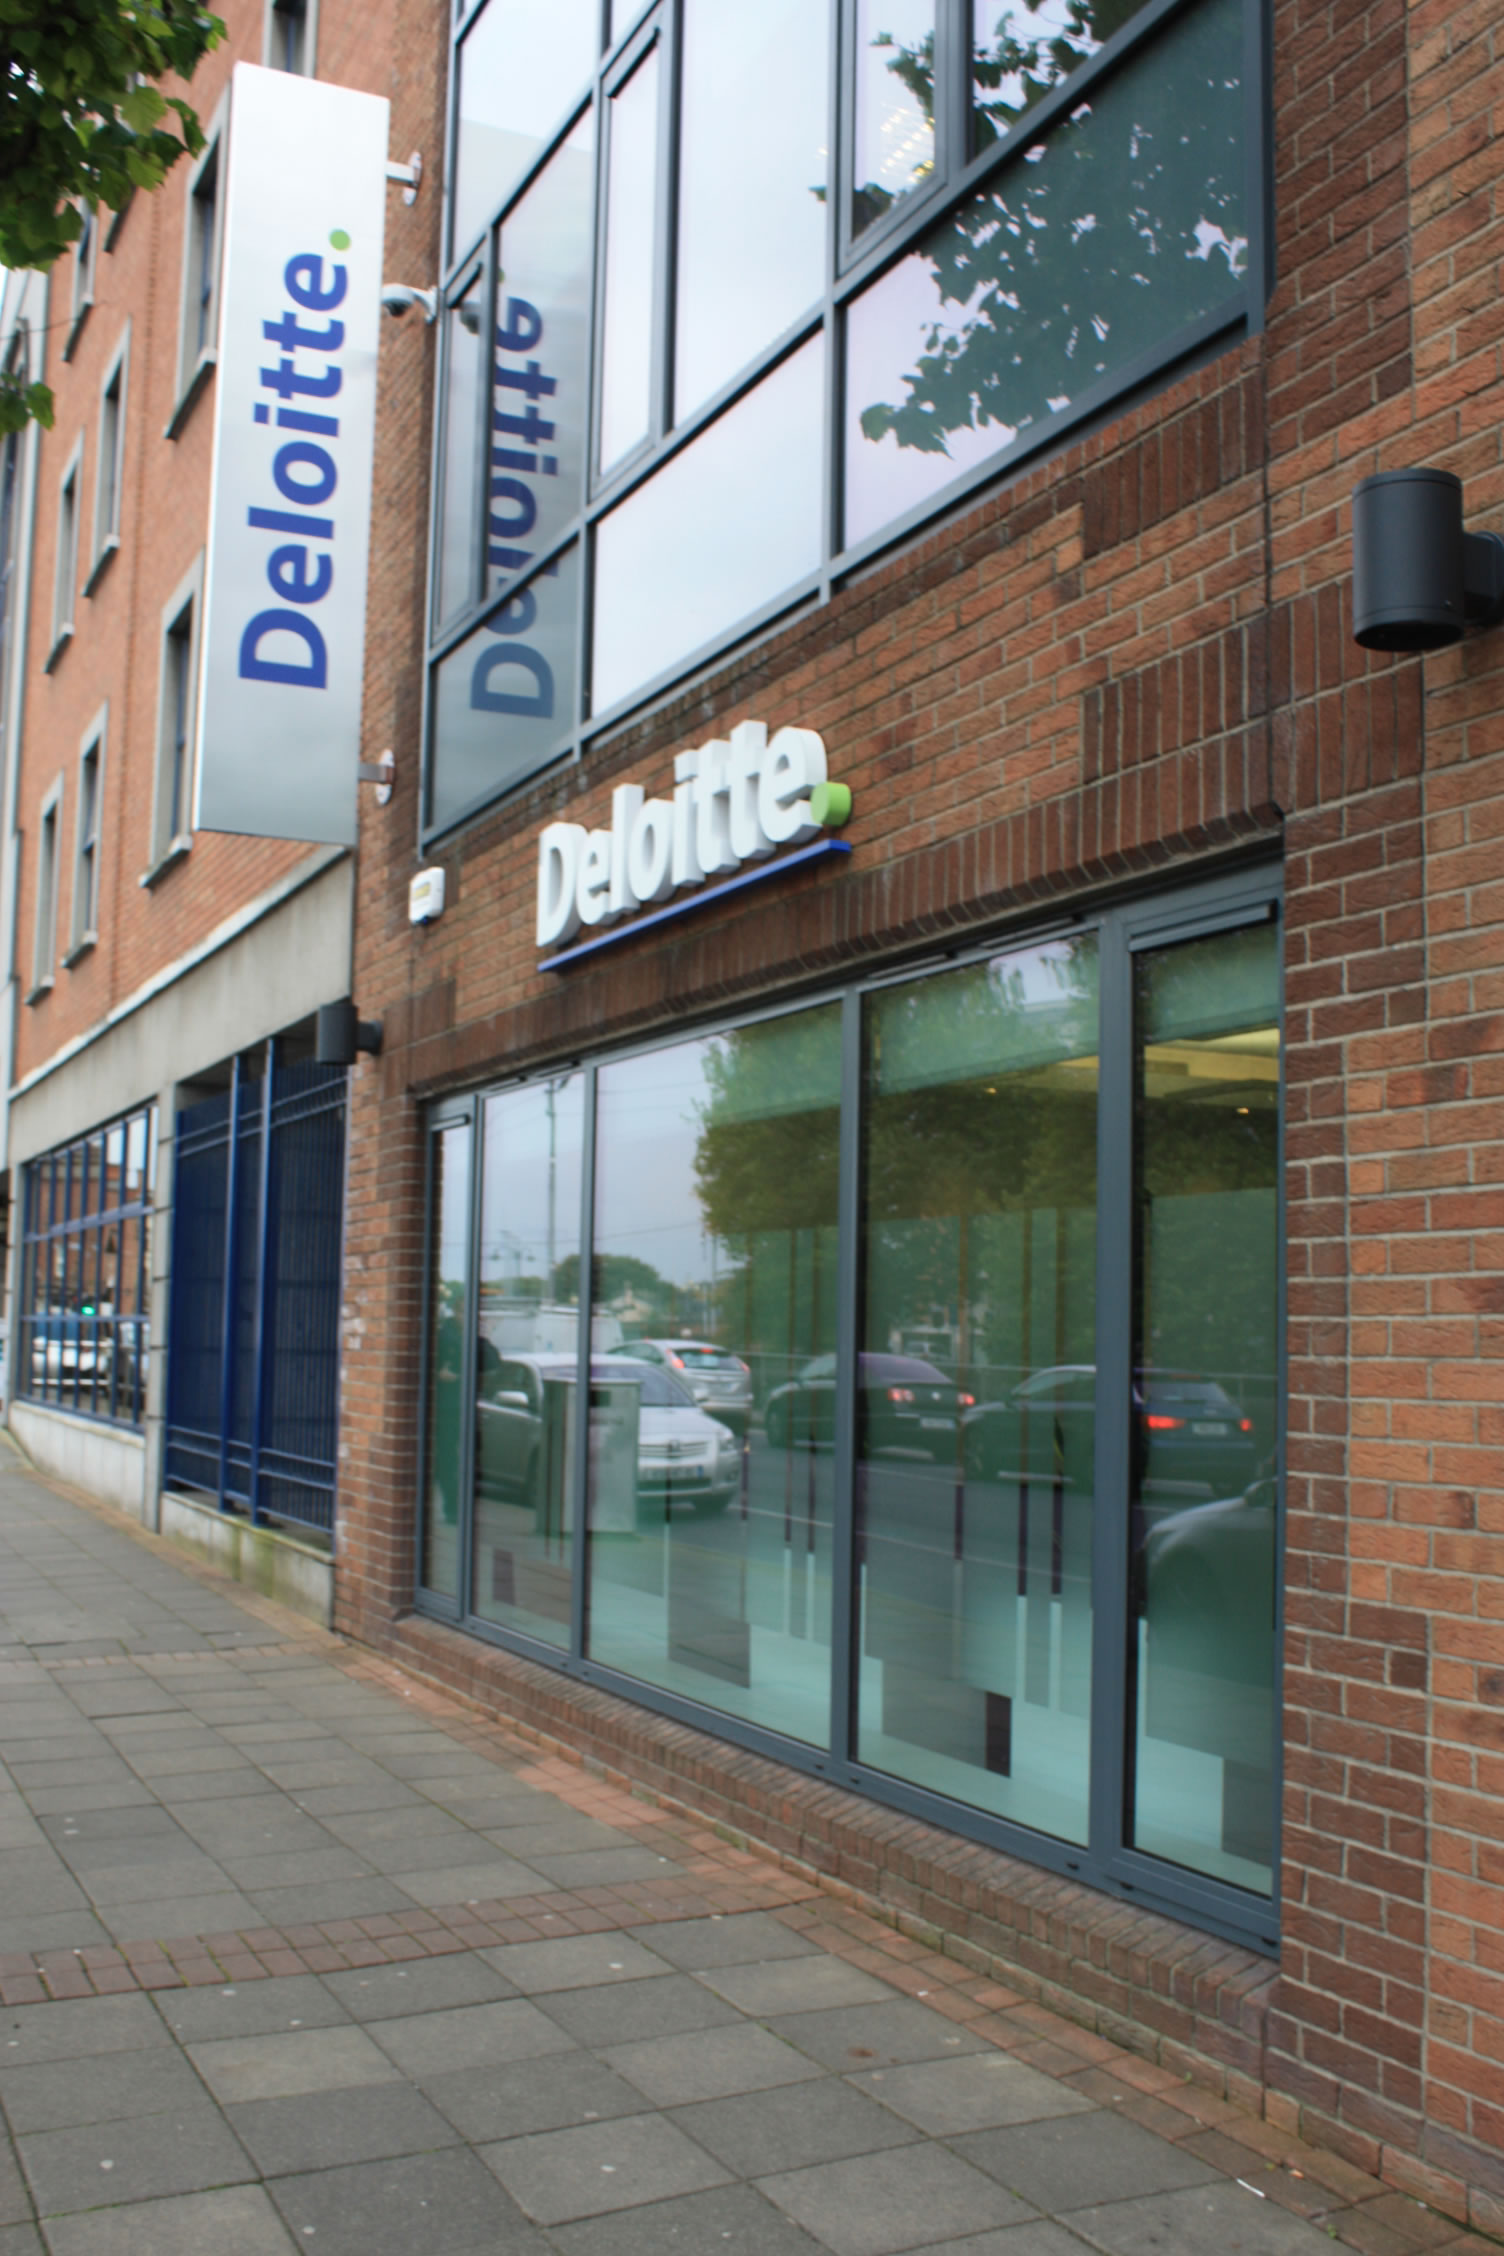 Deloitte & Touche Offices, Limerick